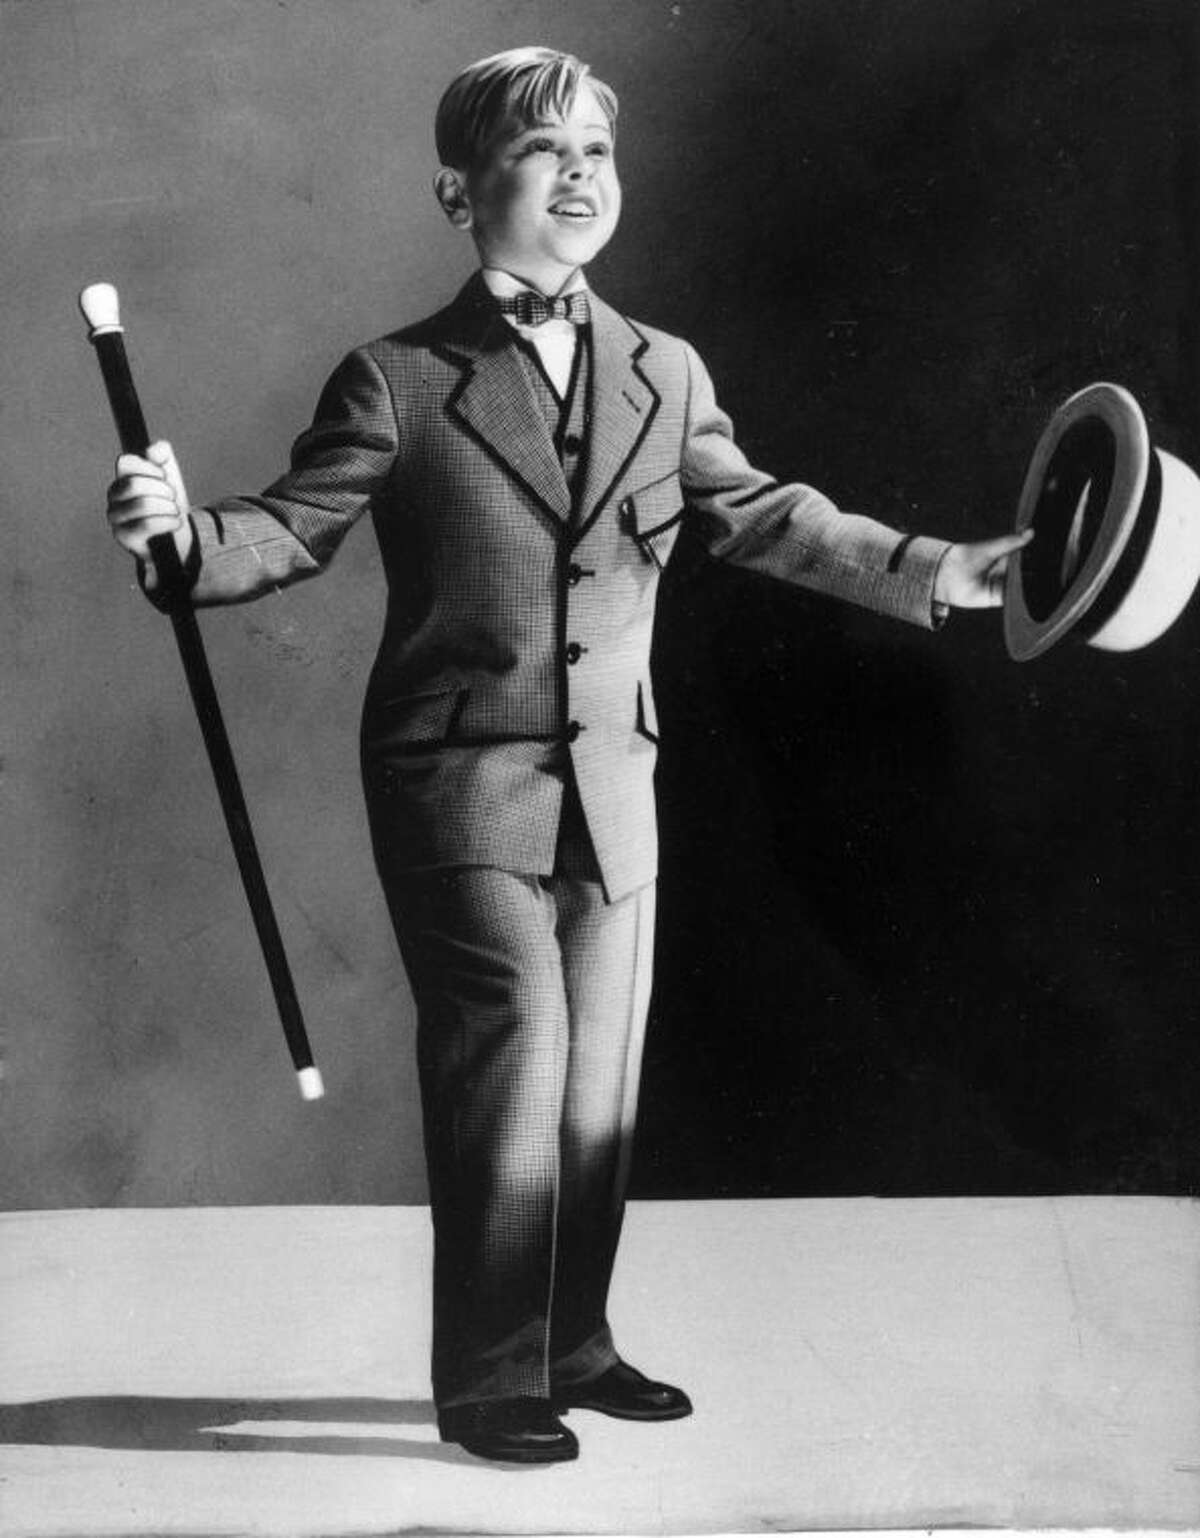 FILE - Child actor Mickey Rooney, 7, is shown as a performer in this undated photo. Rooney, a Hollywood legend whose career spanned more than 80 years, has died. He was 93. Los Angeles Police Commander Andrew Smith said that Rooney was with his family when he died Sunday, April 6, 2014, at his North Hollywood home. (AP Photo/File)